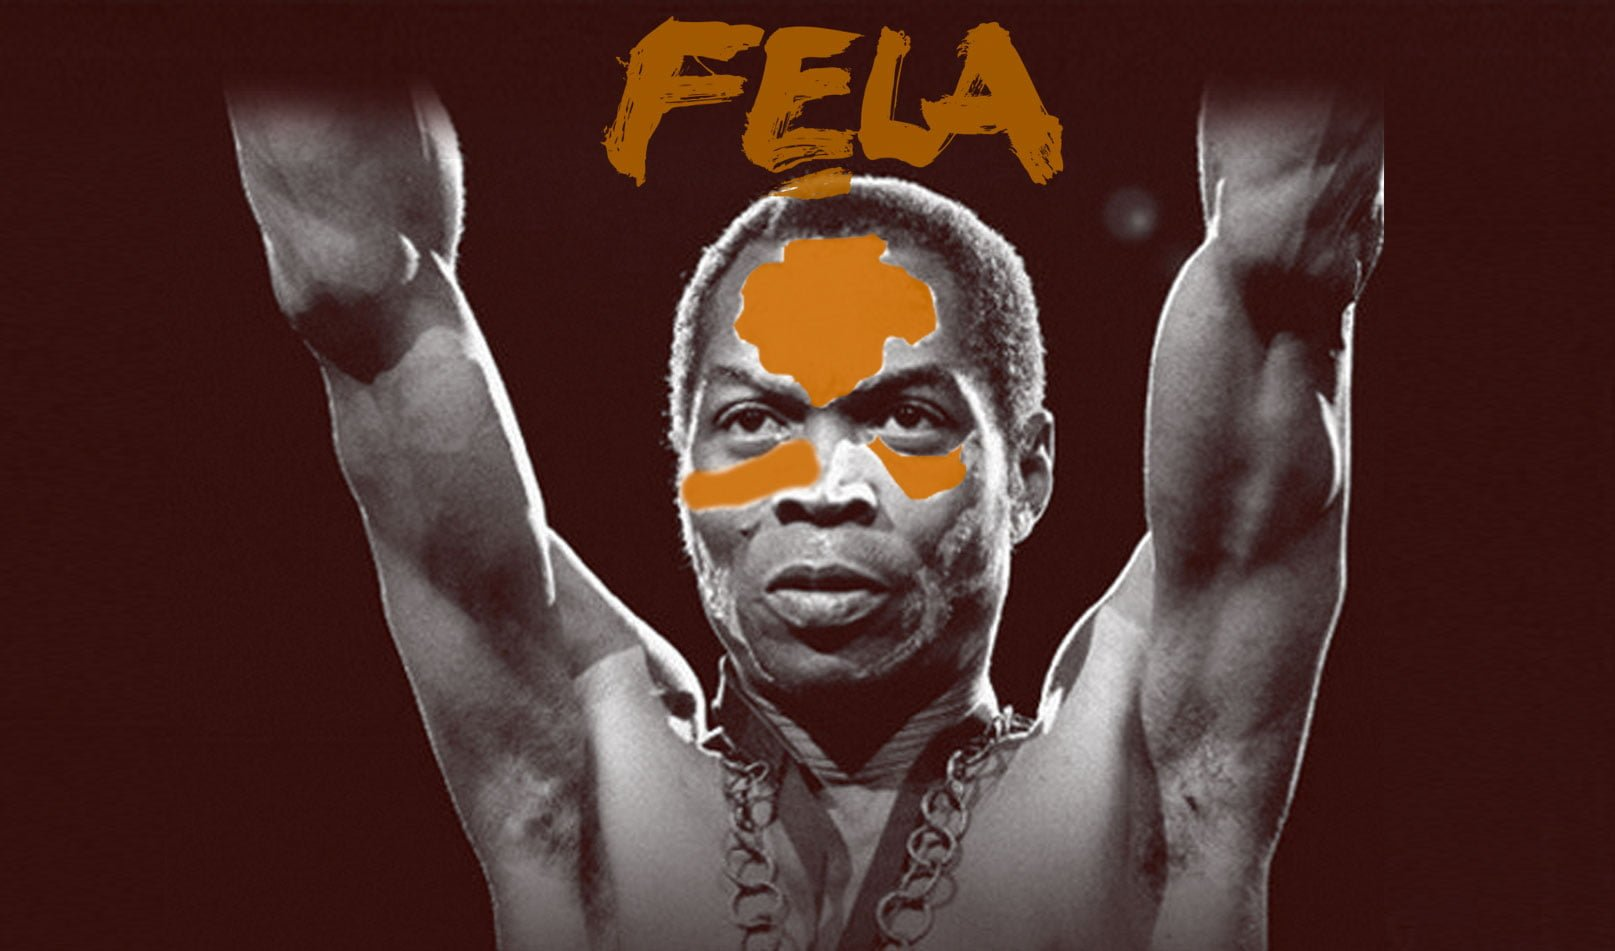 Fela Kuti This Throwback Photo Of Fela In Suit Will Leave You